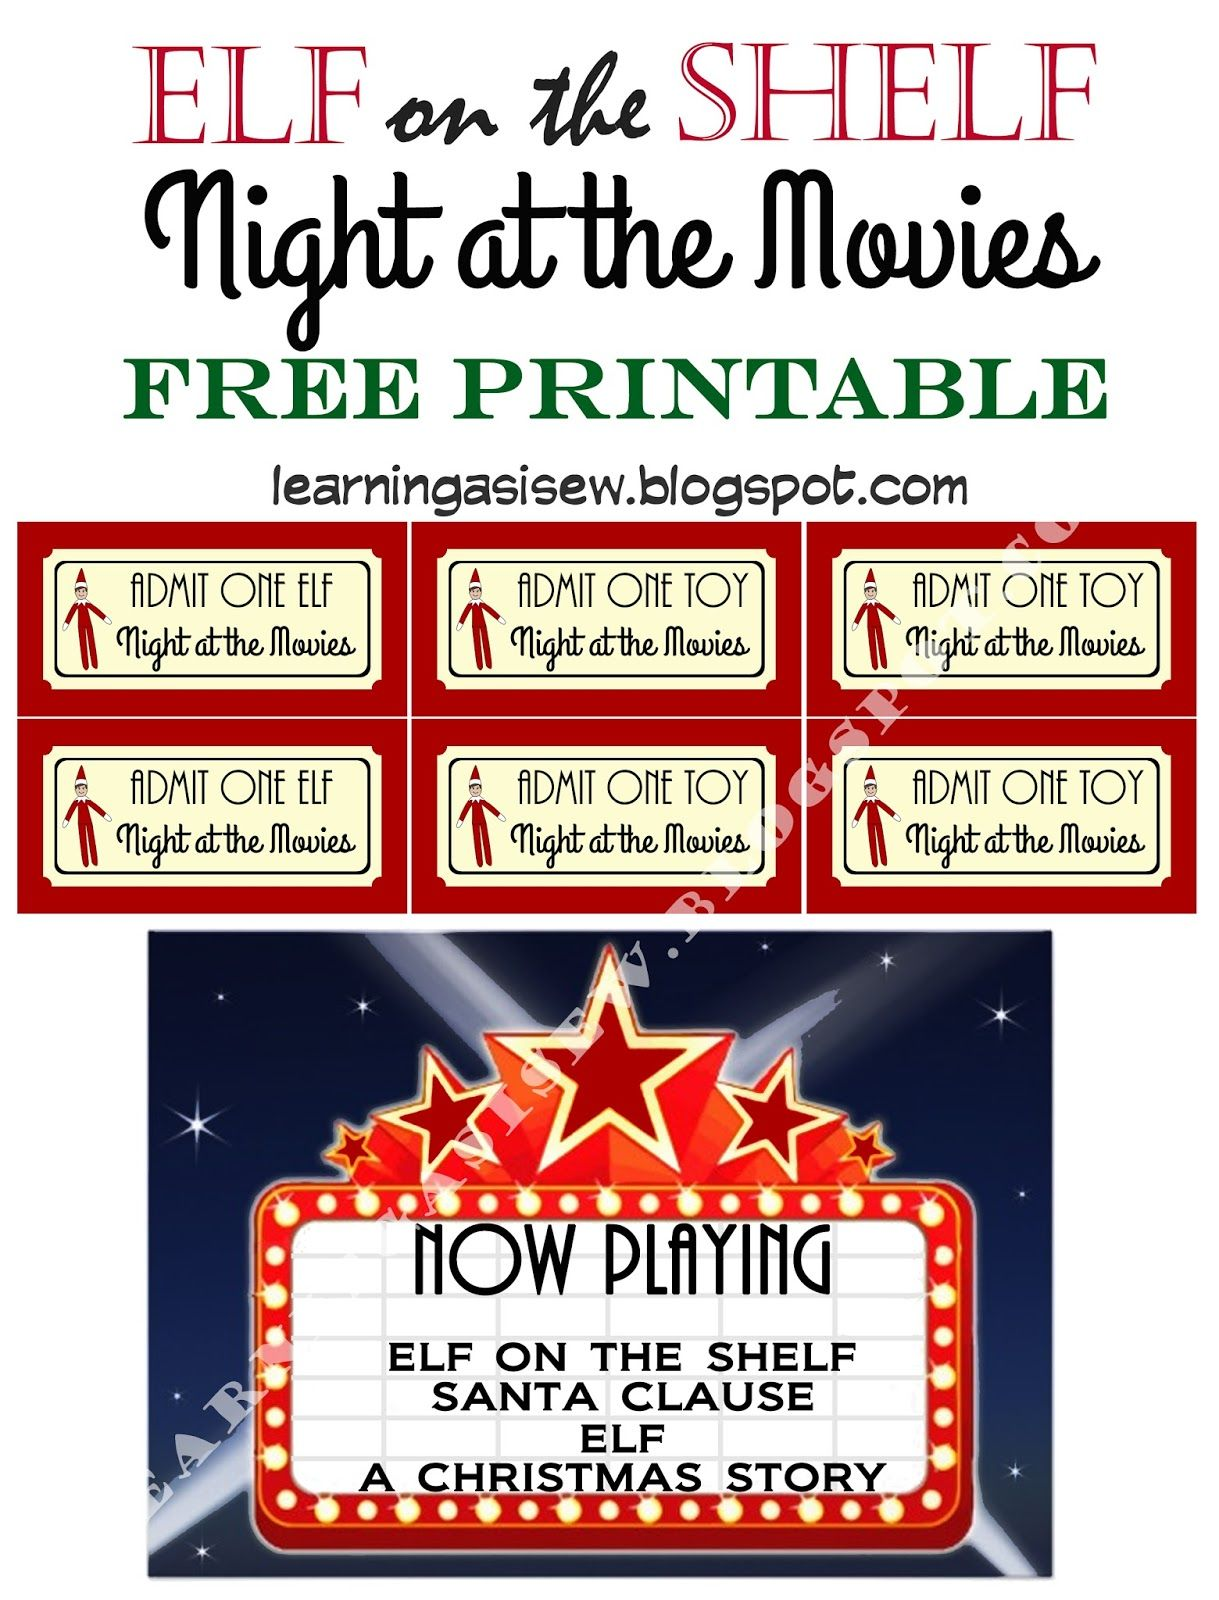 Elf on the Shelf FREE Printable - Night at the movies, printable ...